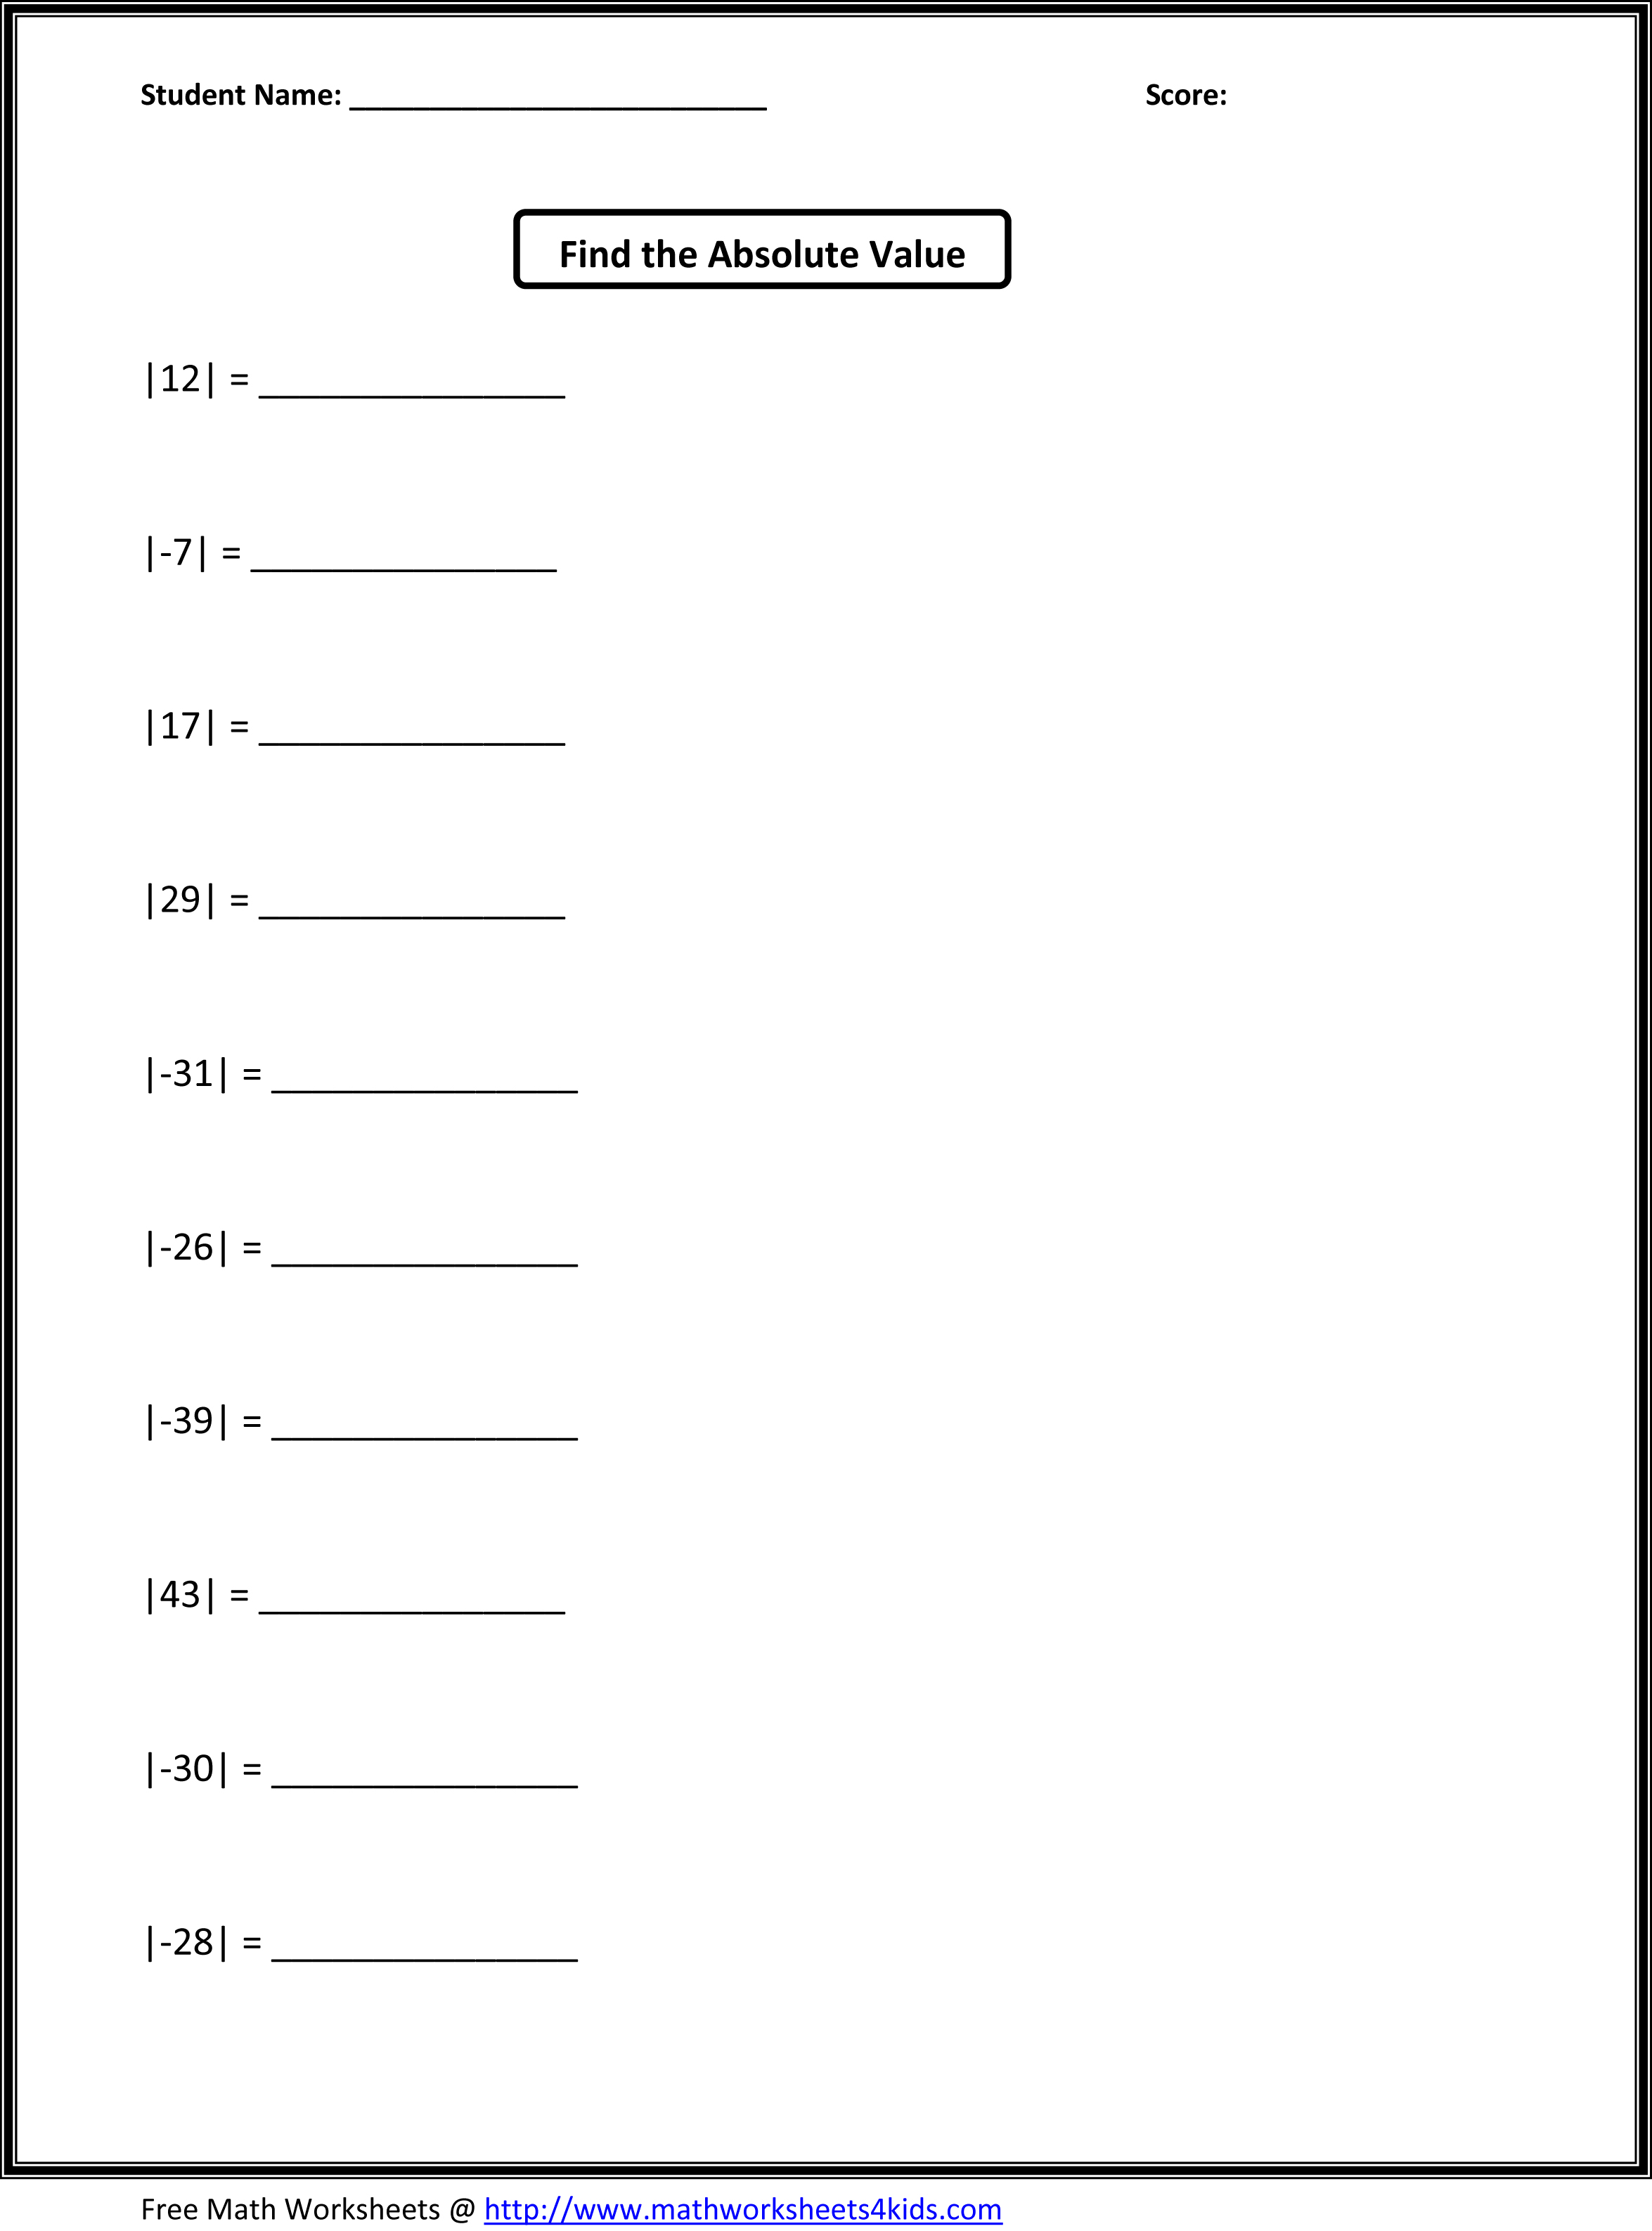 Worksheet For 5th Grade Multiplication